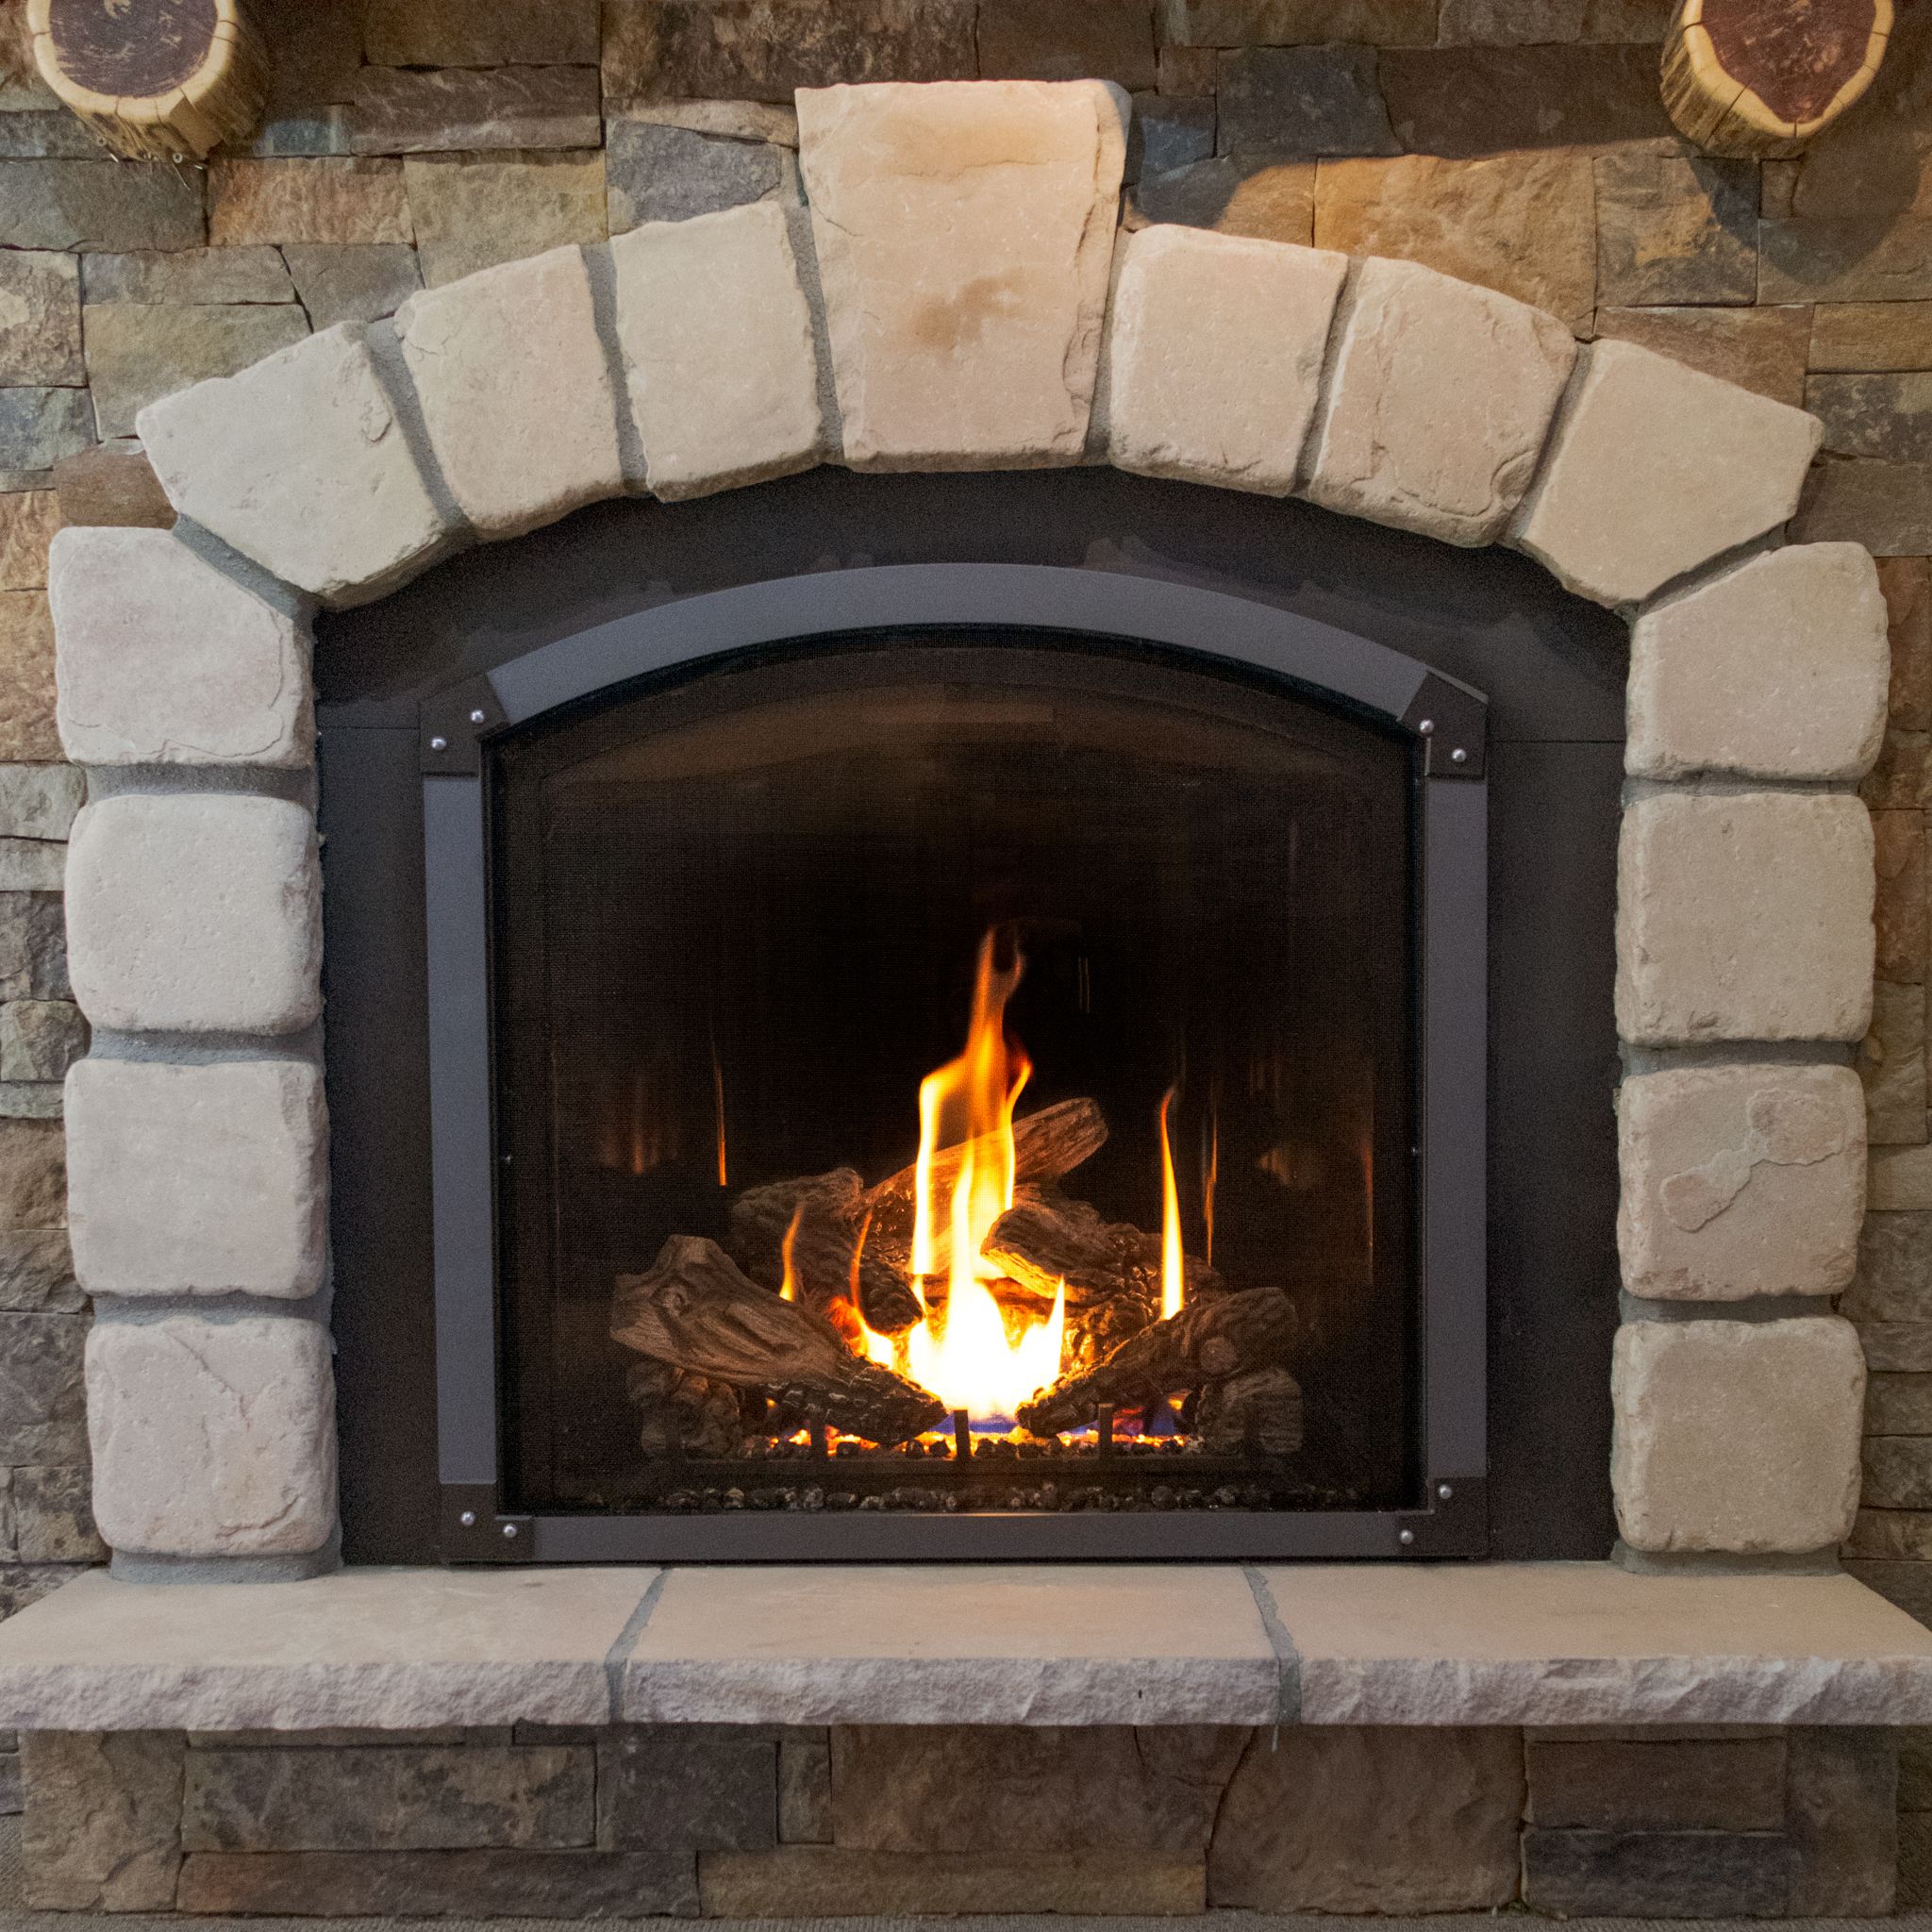 Mendota FV41 Arch - ‧ Direct Vent Gas Fireplace - 40,000 BTU‧ Panoramic Black Porcelain Reflective Firebox Liner‧ Grace Wide Arch Front - Vintage Iron‧ Grace Wide Arch Accent Corners - Black, with Chrome Rivets‧ Premium Fiber Oak Logs‧ Proflame2 Full Function Remote Control‧ Fan‧ Terrific Heater & Superior Quality‧ Large selection of Fronts & Colors‧ Most Popular Gas Fireplace